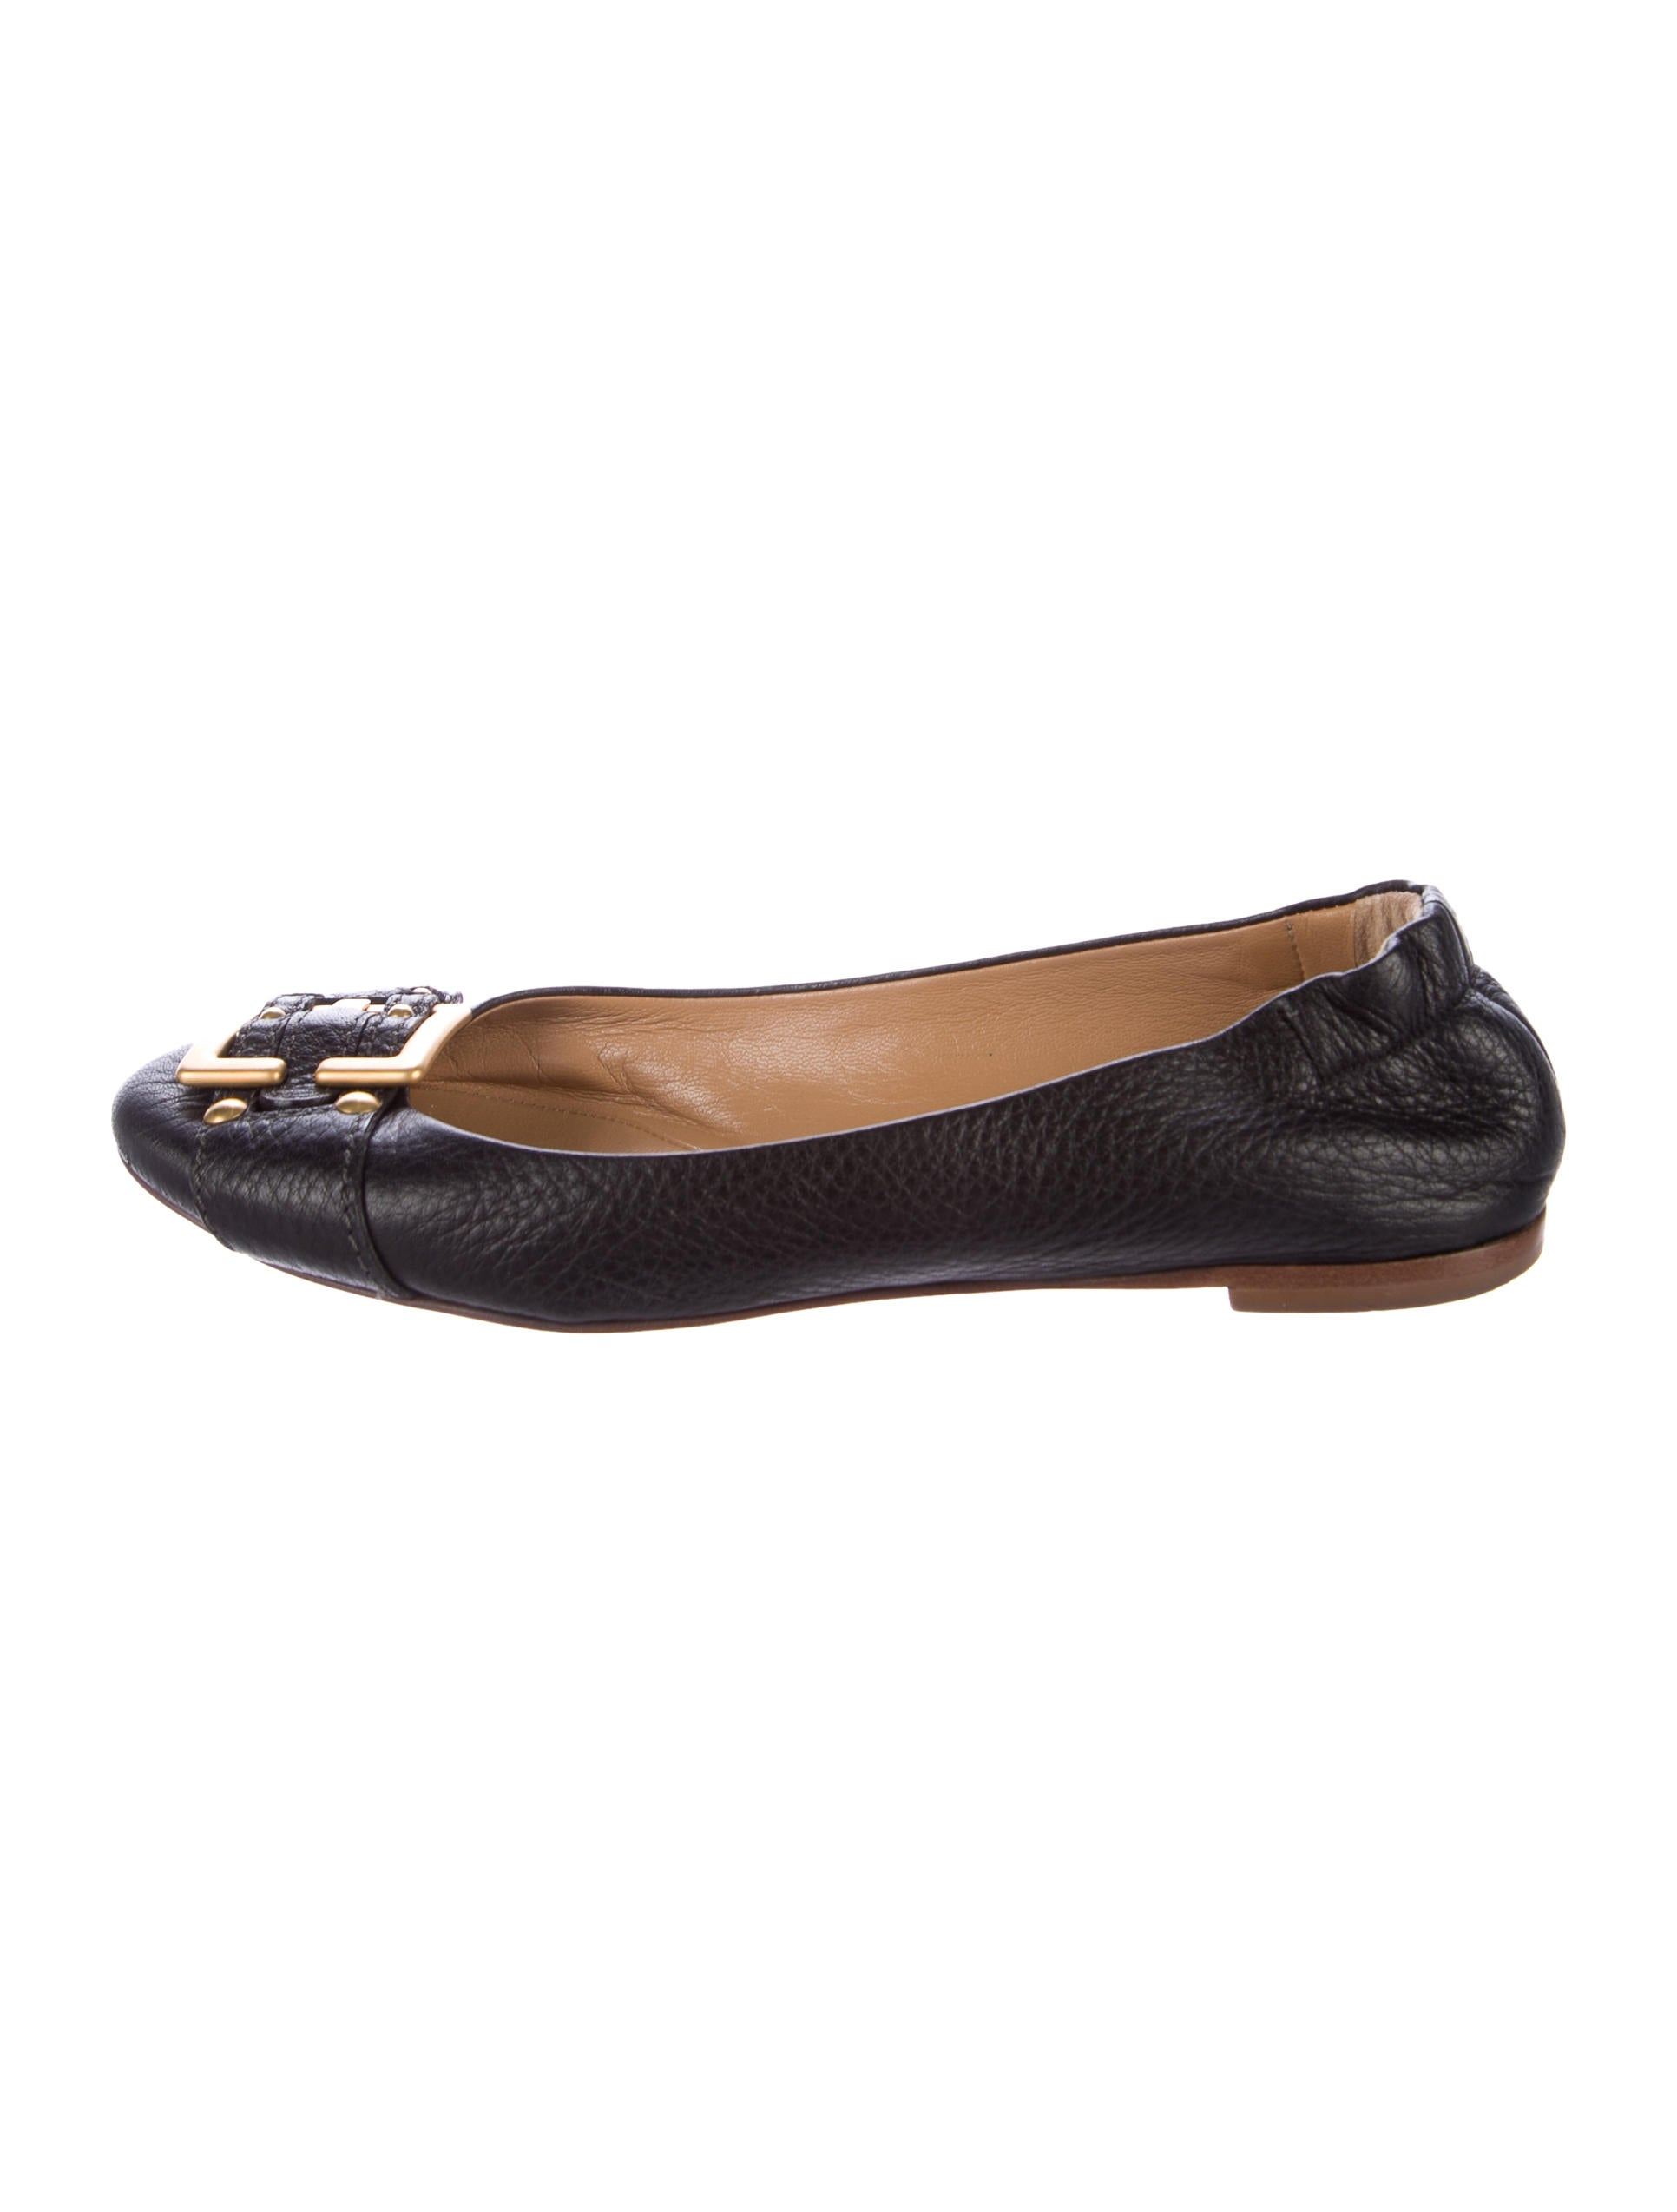 discount with mastercard Chloé Leather Rounded-Toe Flats outlet finishline outlet 2015 new outlet browse discount outlet store TOiYXTD